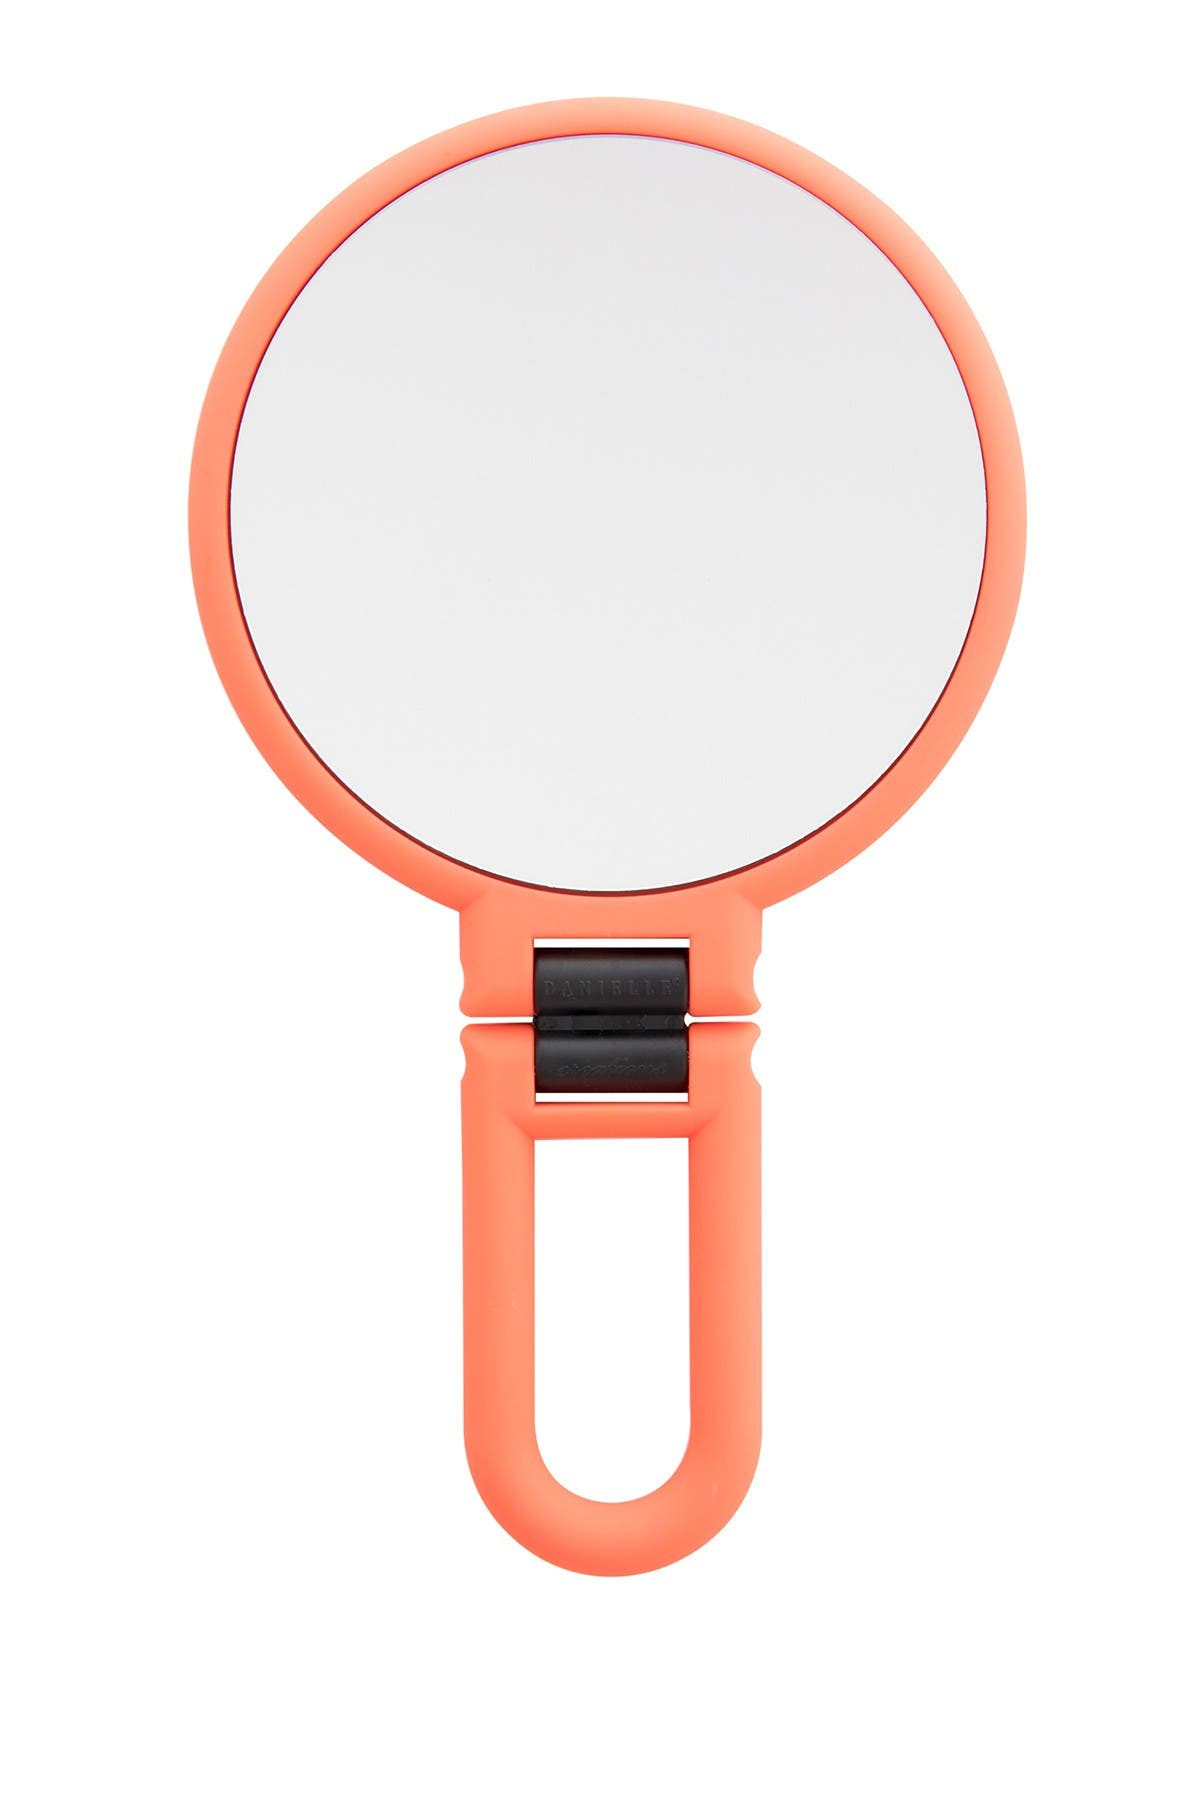 Image of UPPER CANADA SOAPS Danielle Soft Touch Hand Held Foldable Mirror - Neon Coral